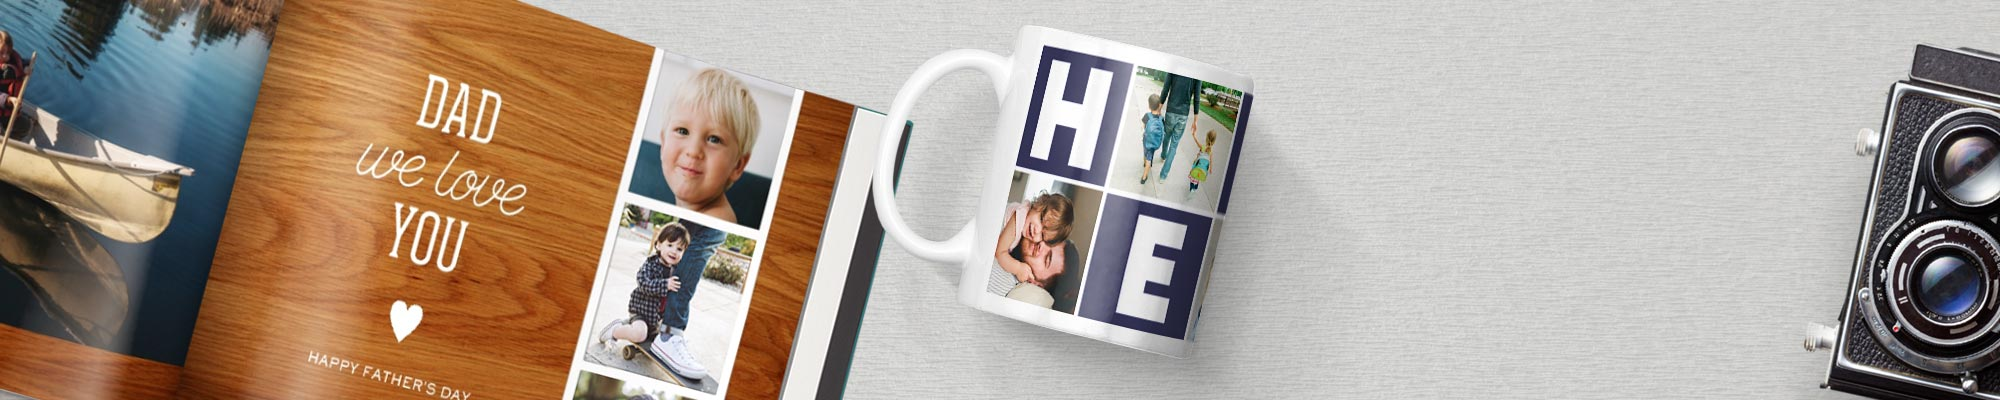 Photo gift ideas for Dad